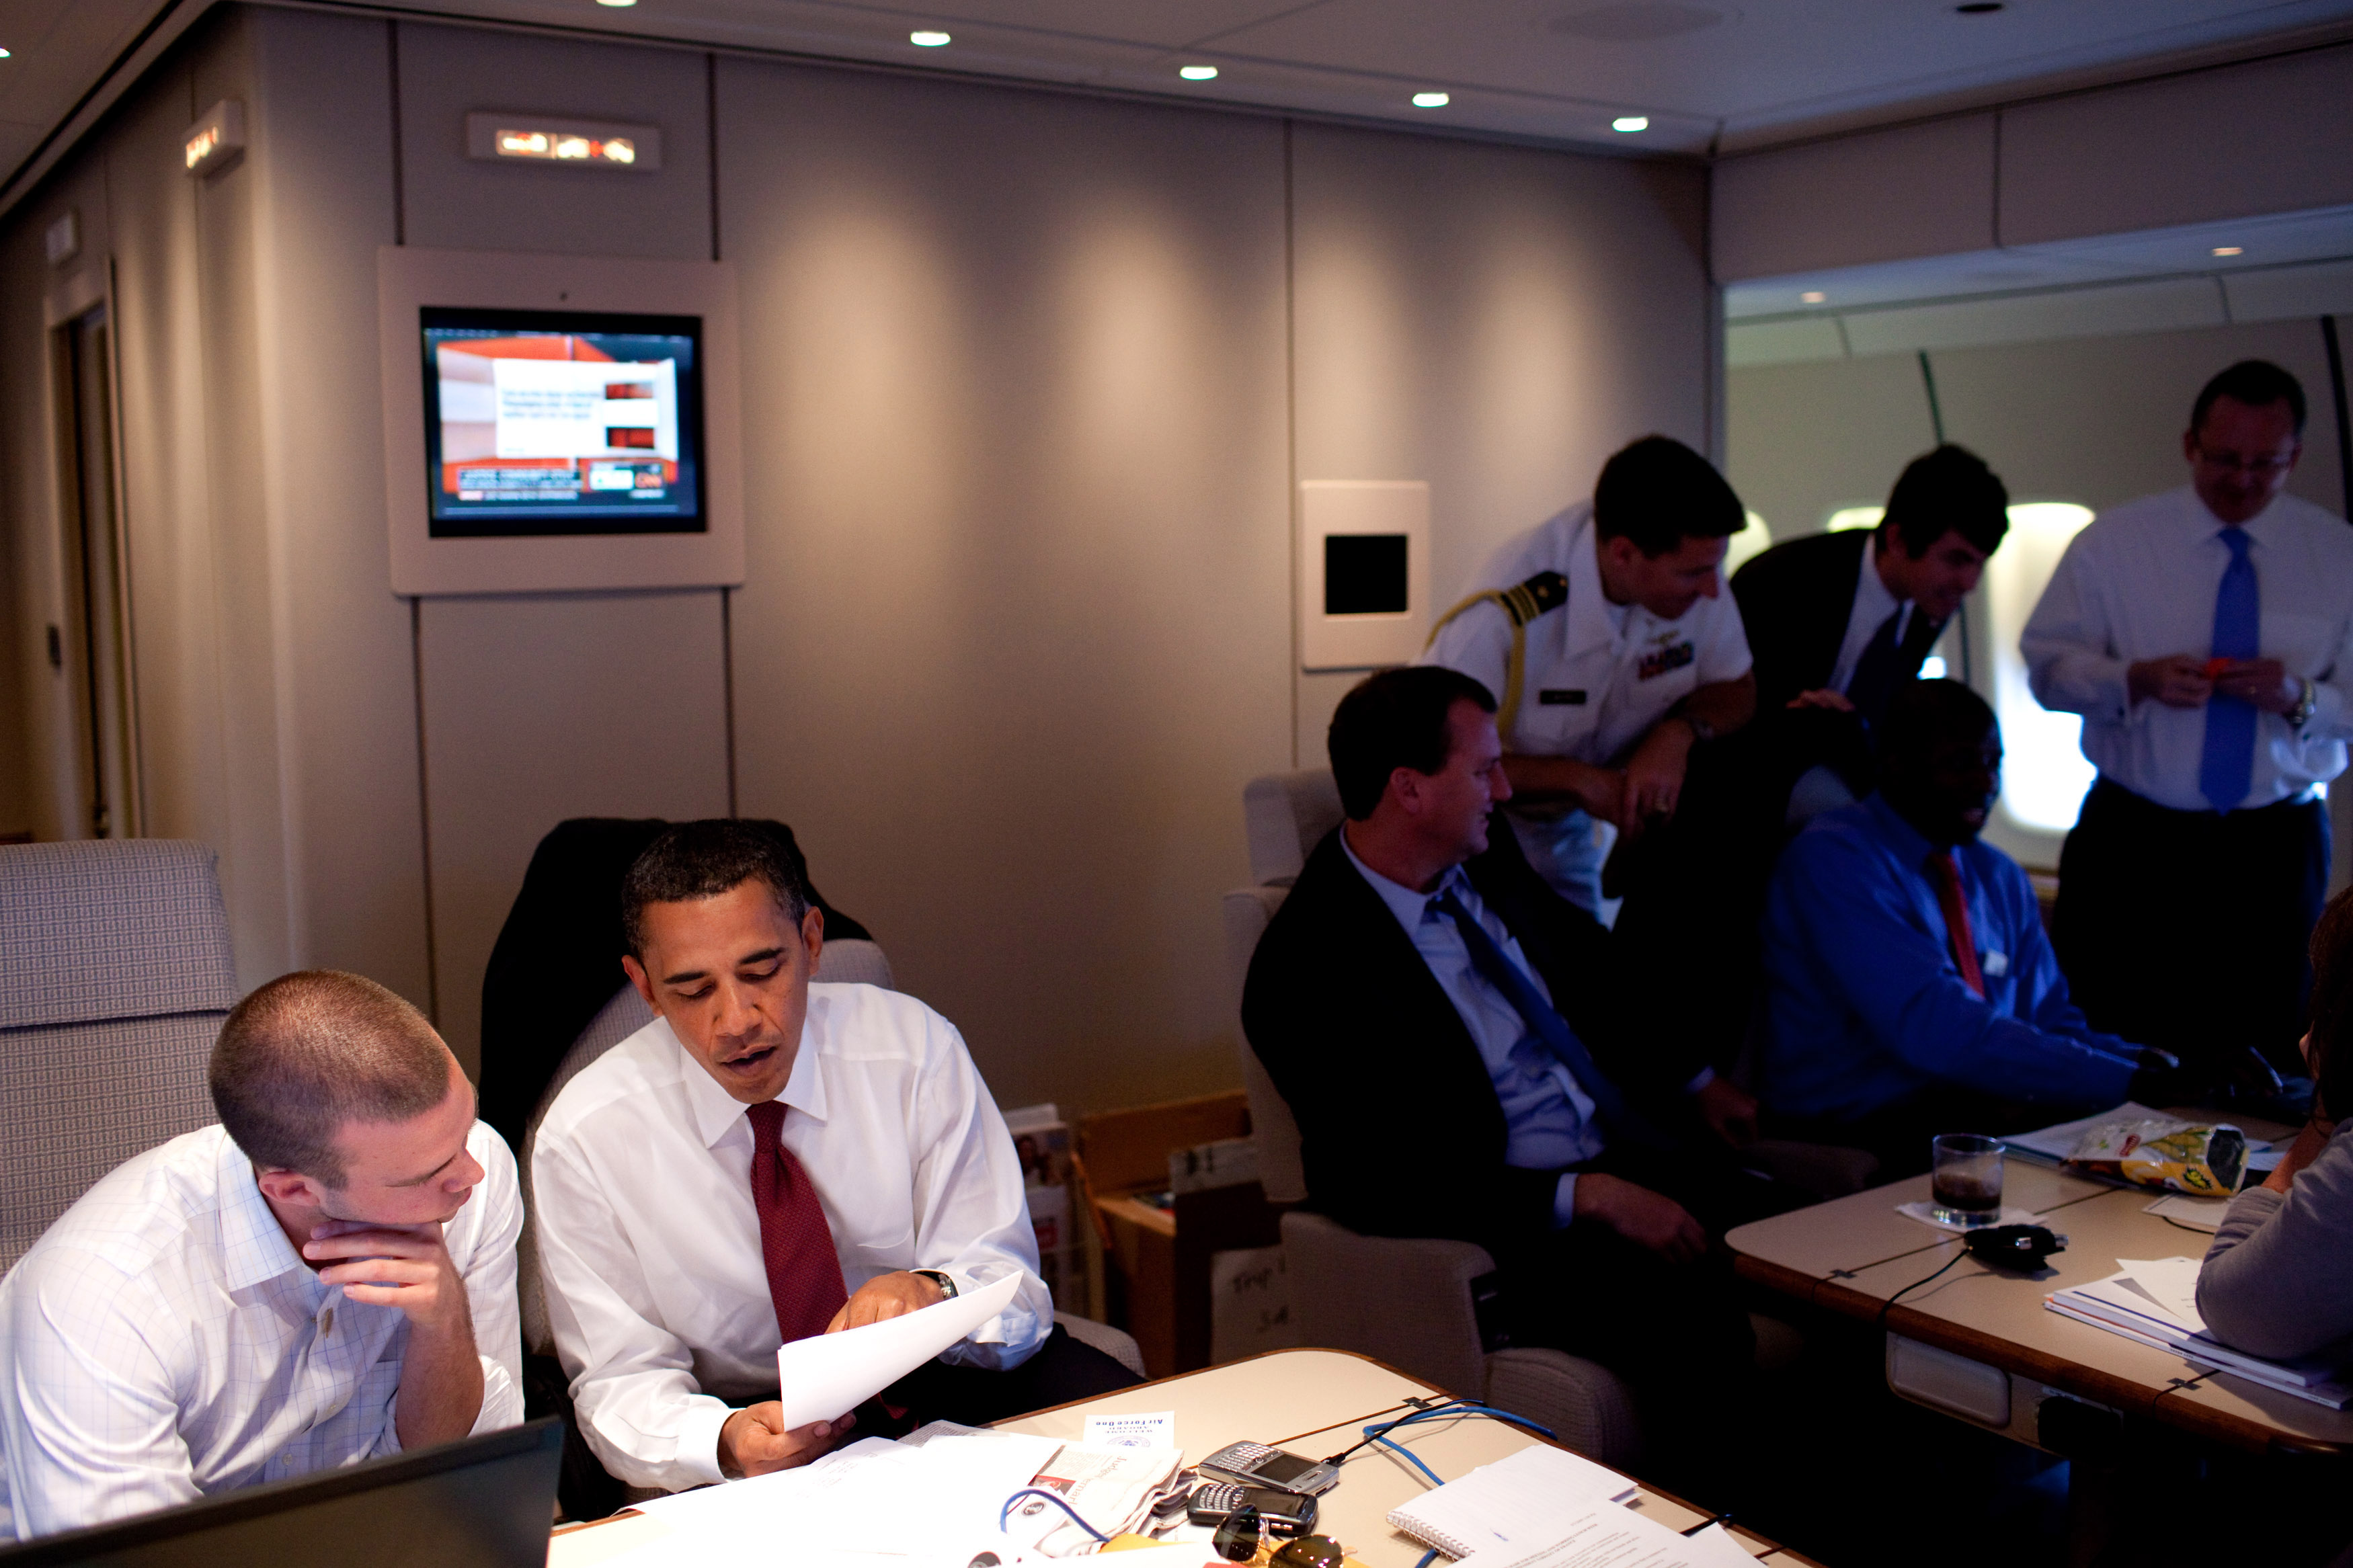 Fichier:Air Force One President Office.jpg — Wikipédia